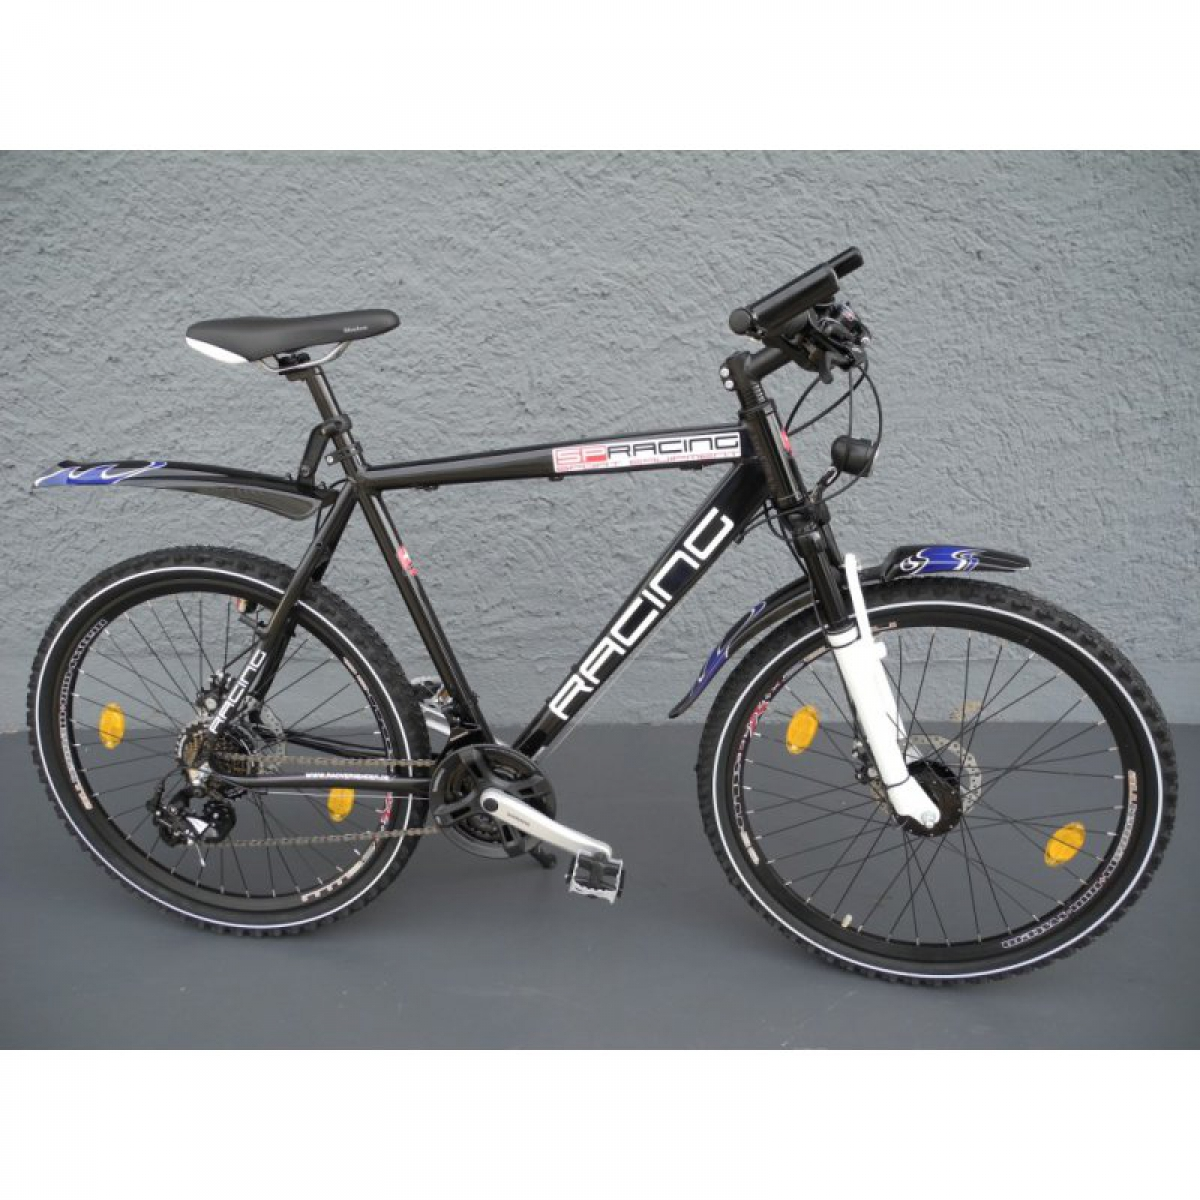 26 zoll alu mtb fahrrad 21 gang shimano nabendynamo stvzo. Black Bedroom Furniture Sets. Home Design Ideas